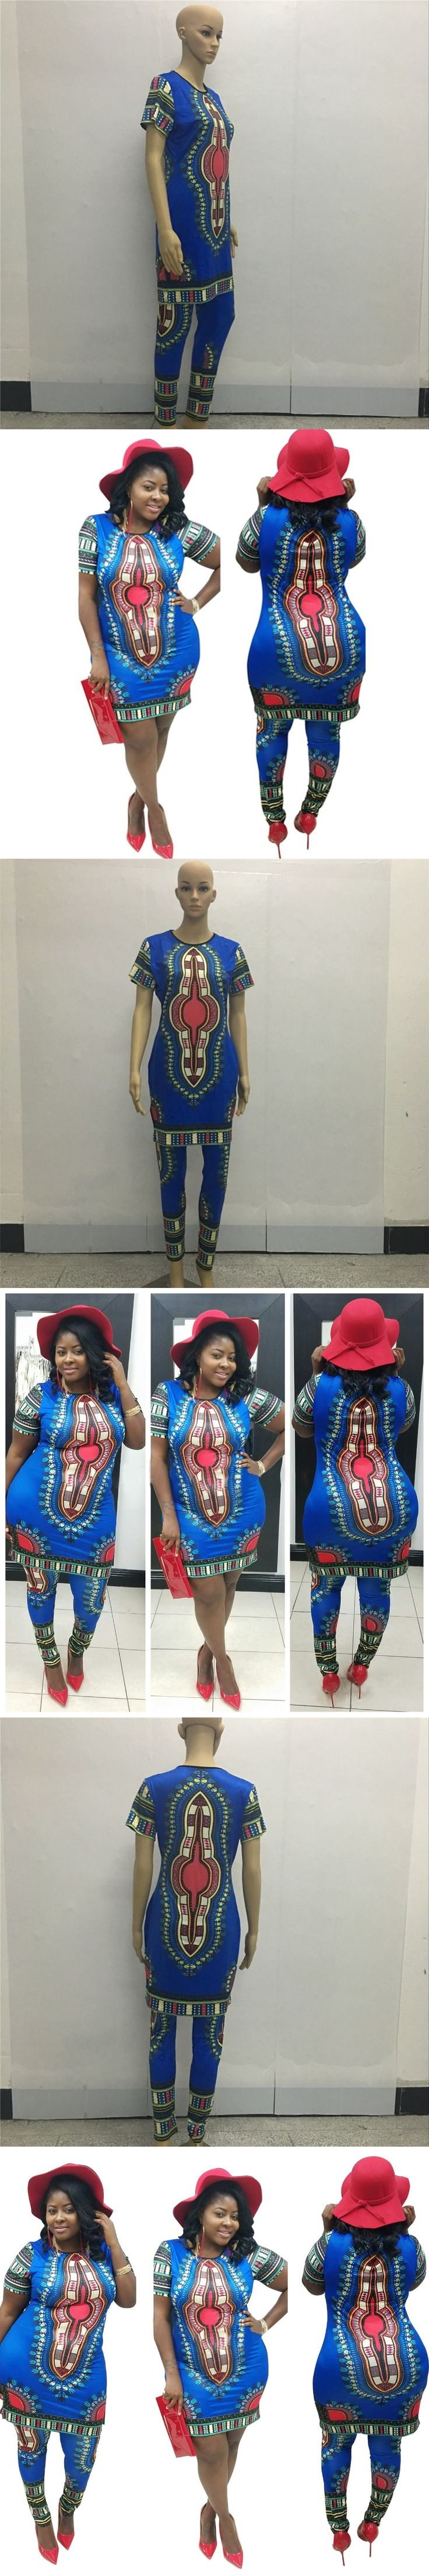 New Summer Fasion Traditional African Clothing 2 Piece Set Women Africaine Print Dashiki Blue Short Shirts and Matching Pants